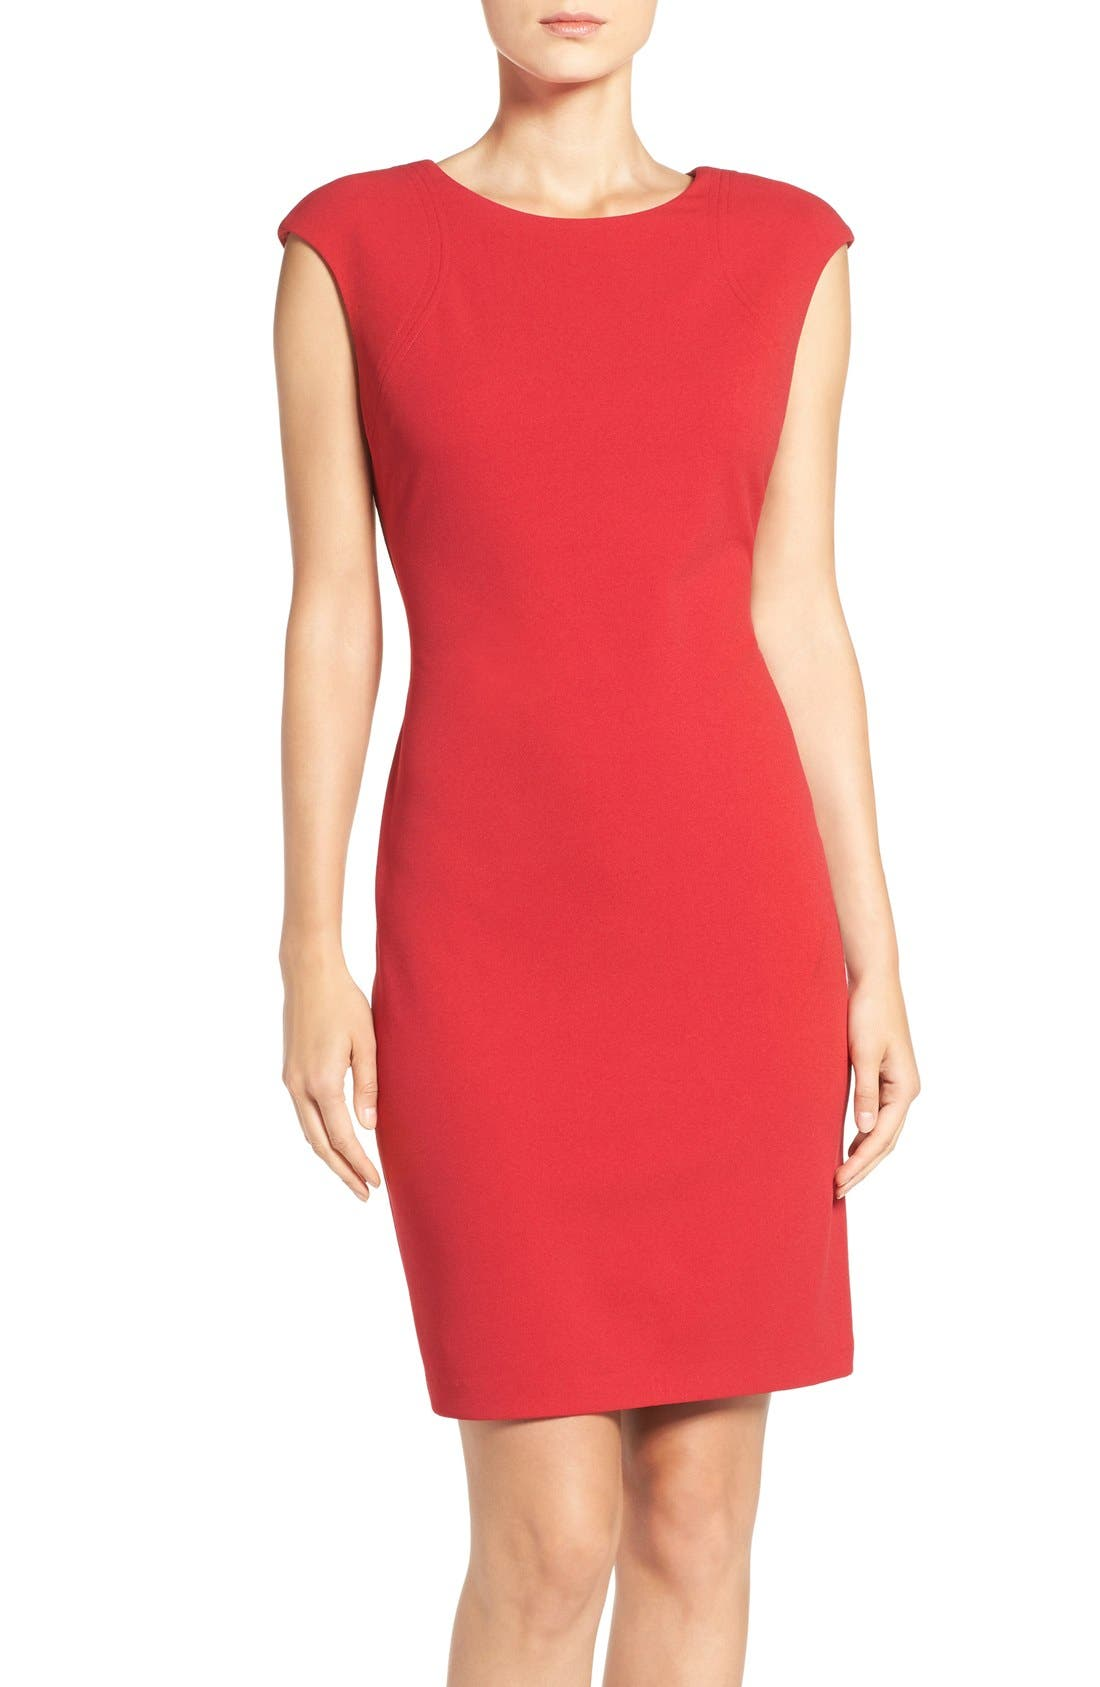 Alternate Image 1 Selected - Vince Camuto Crepe Sheath Dress